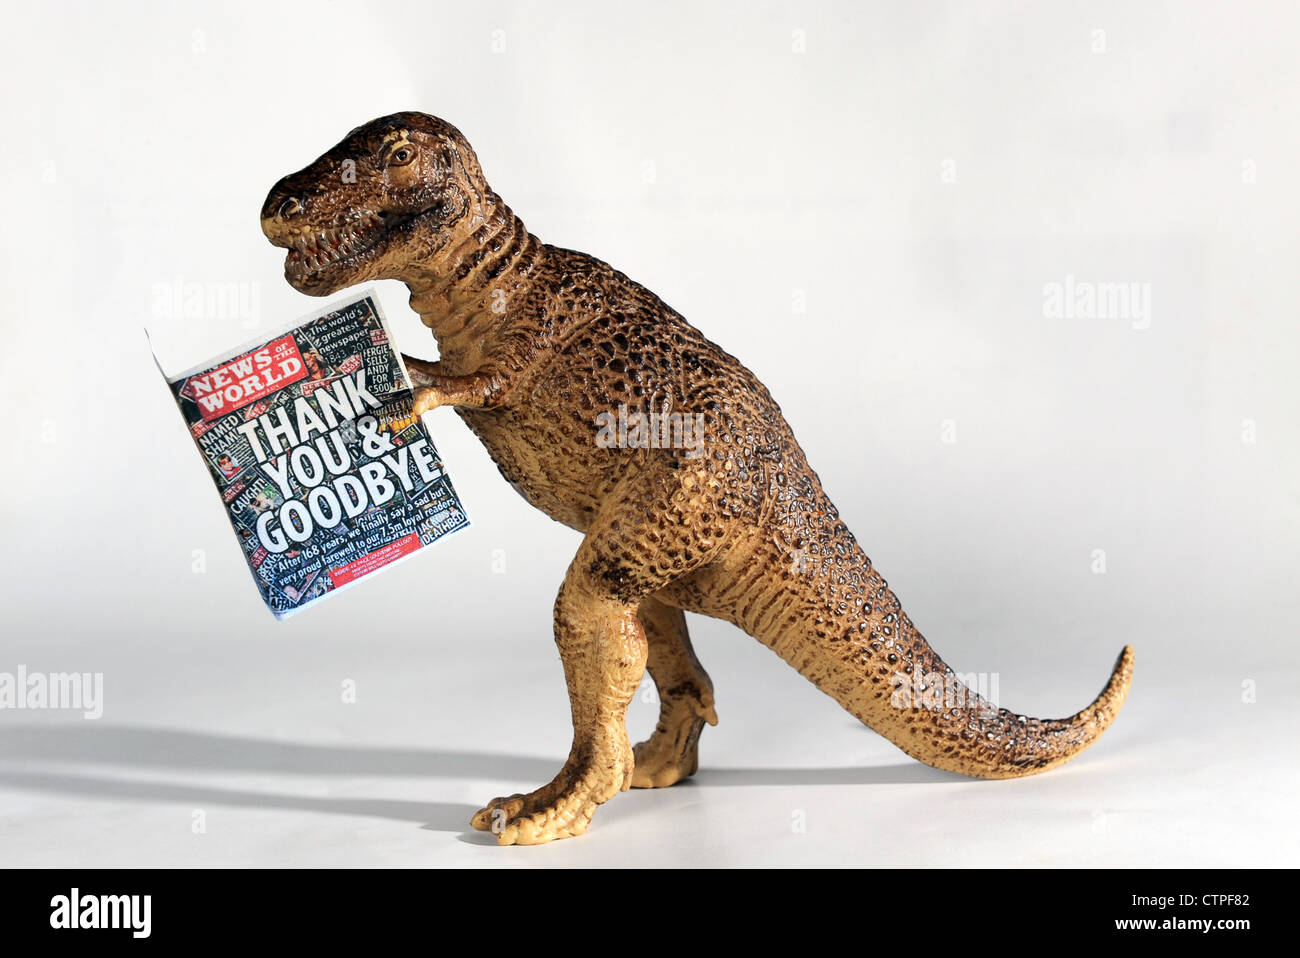 News of the World newspaper held by toy dinosaur Stock Photo